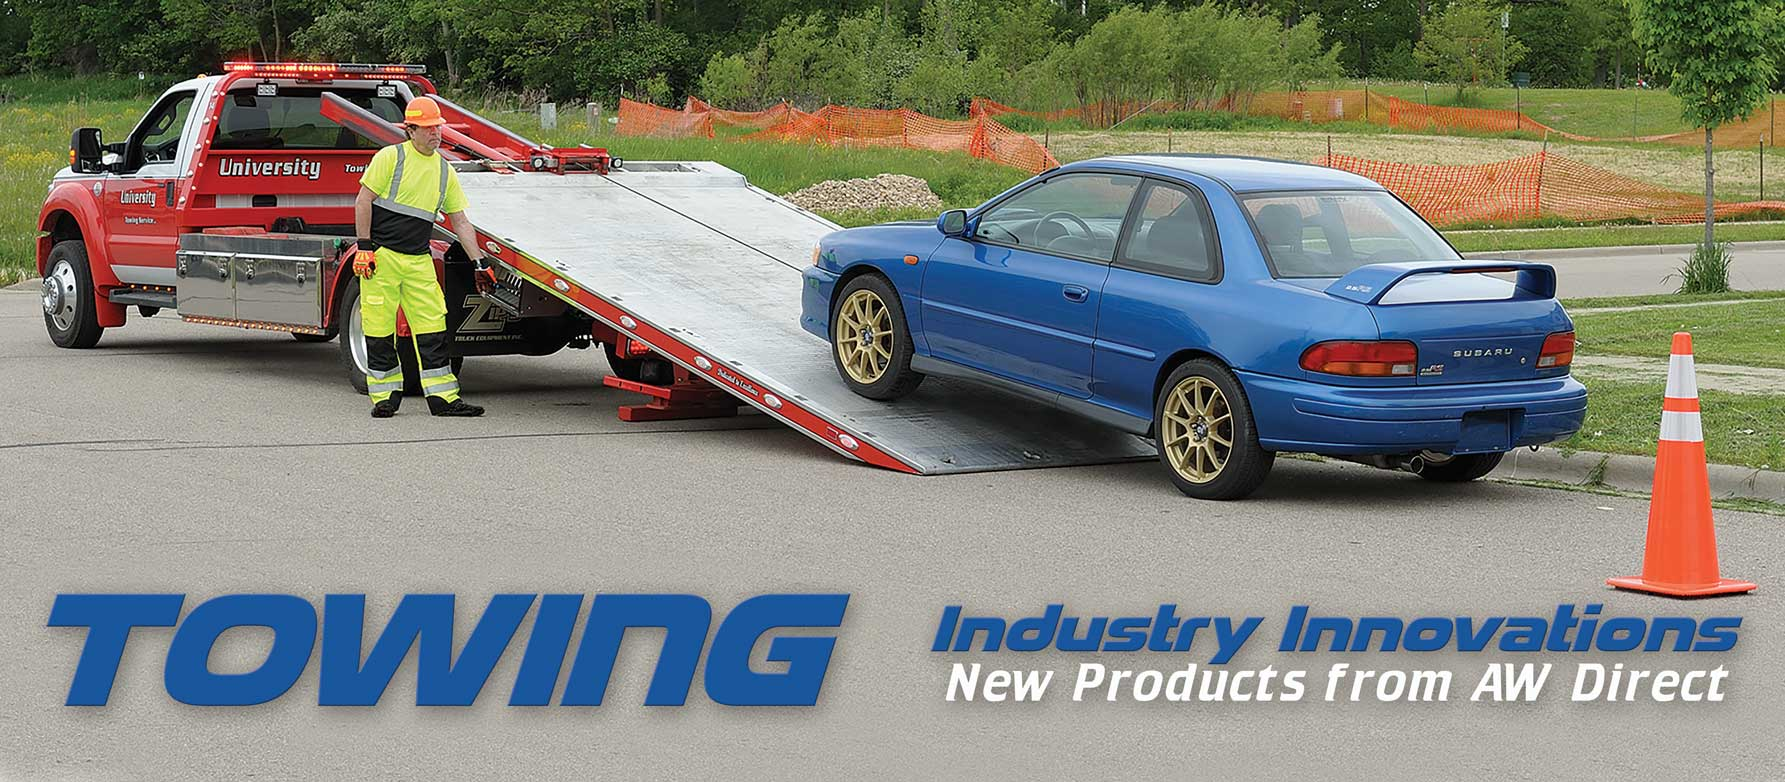 Towing Industry Innovation: New Products from AW Direct